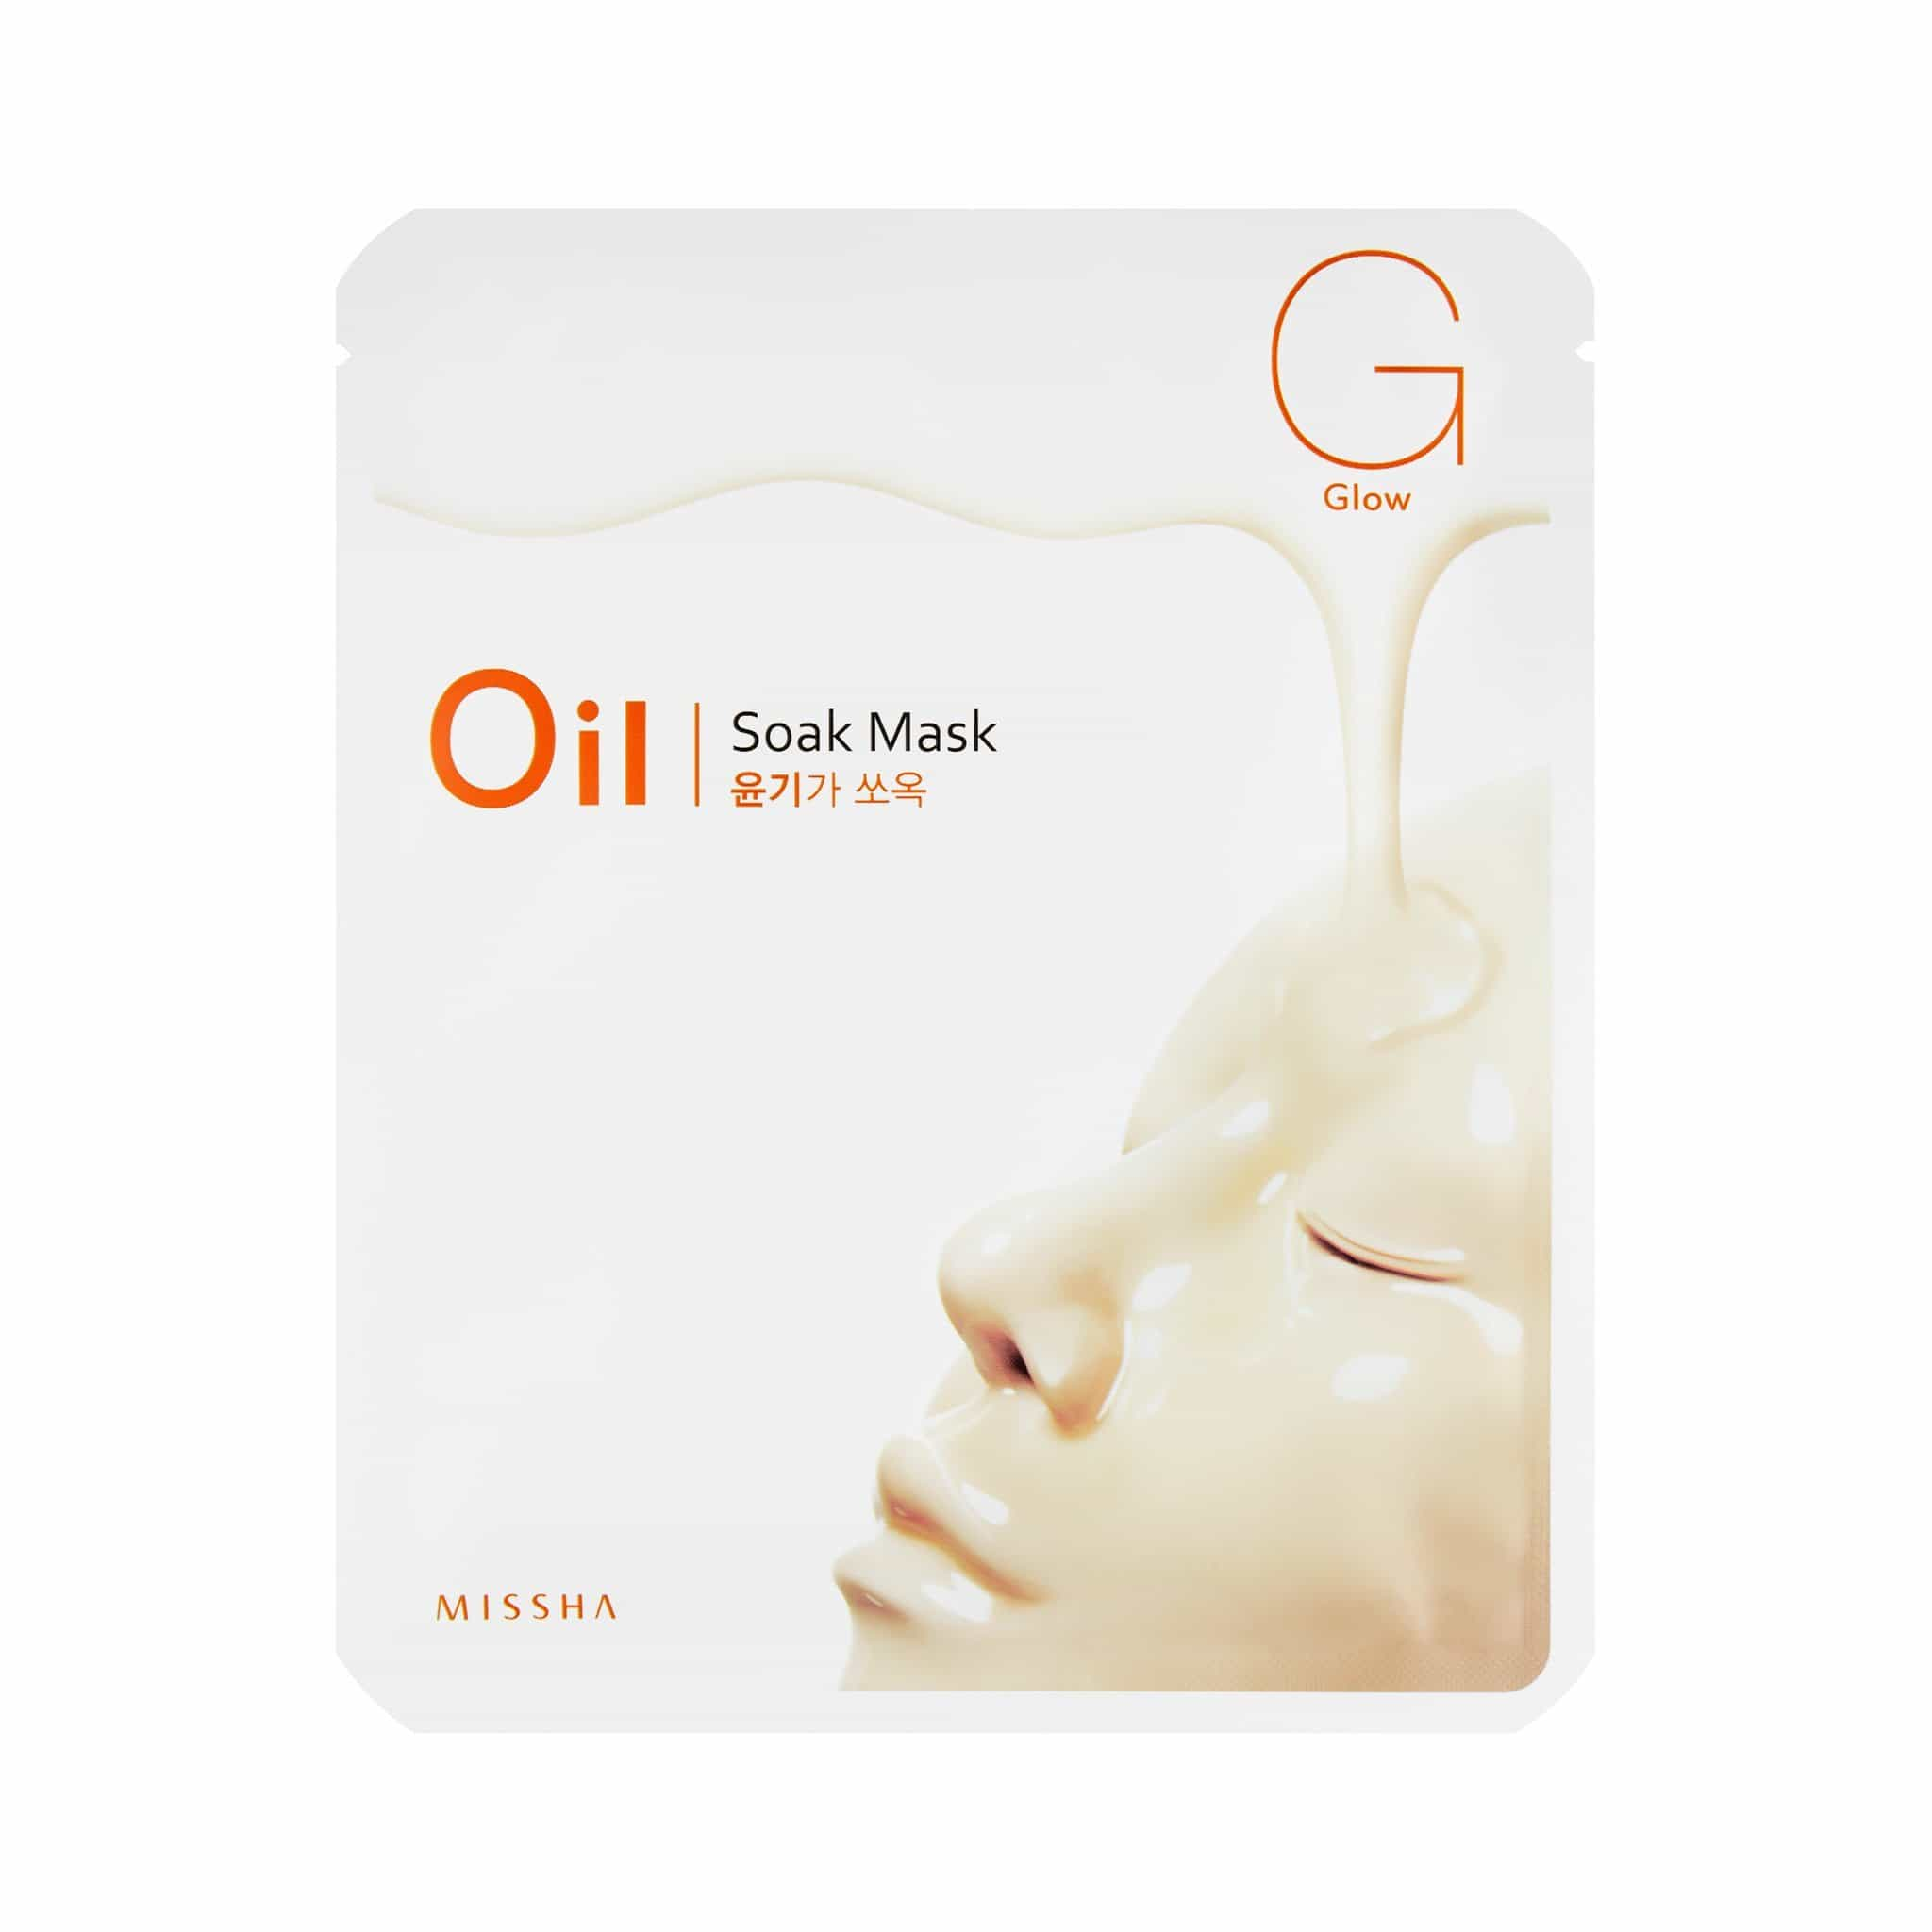 OIL SOAK MASK - MISSHA